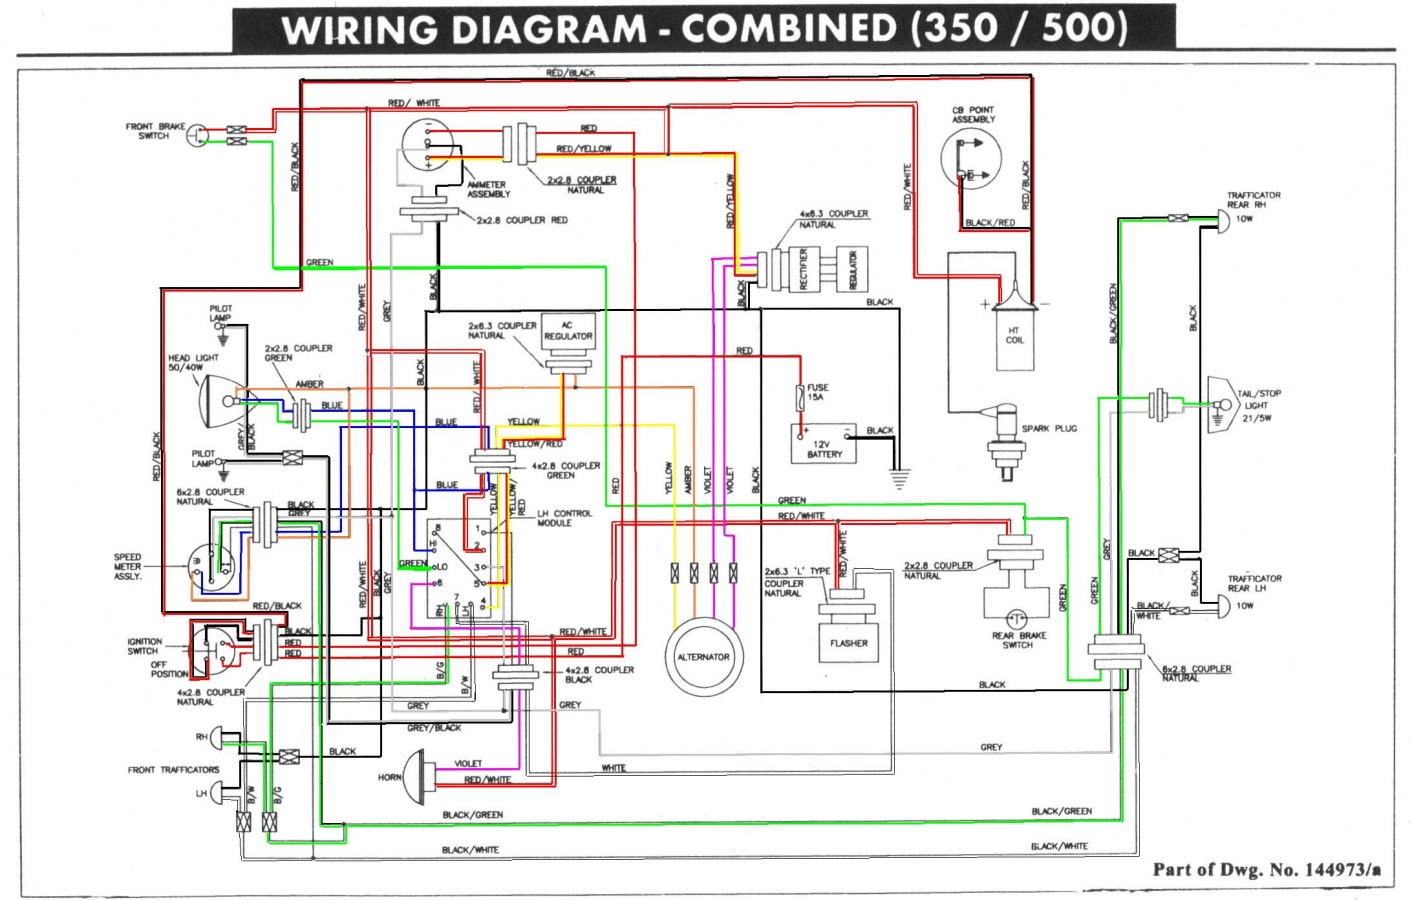 diagrams 875667 royal enfield 350 wiring diagram royal enfield free wiring schematics at edmiracle.co